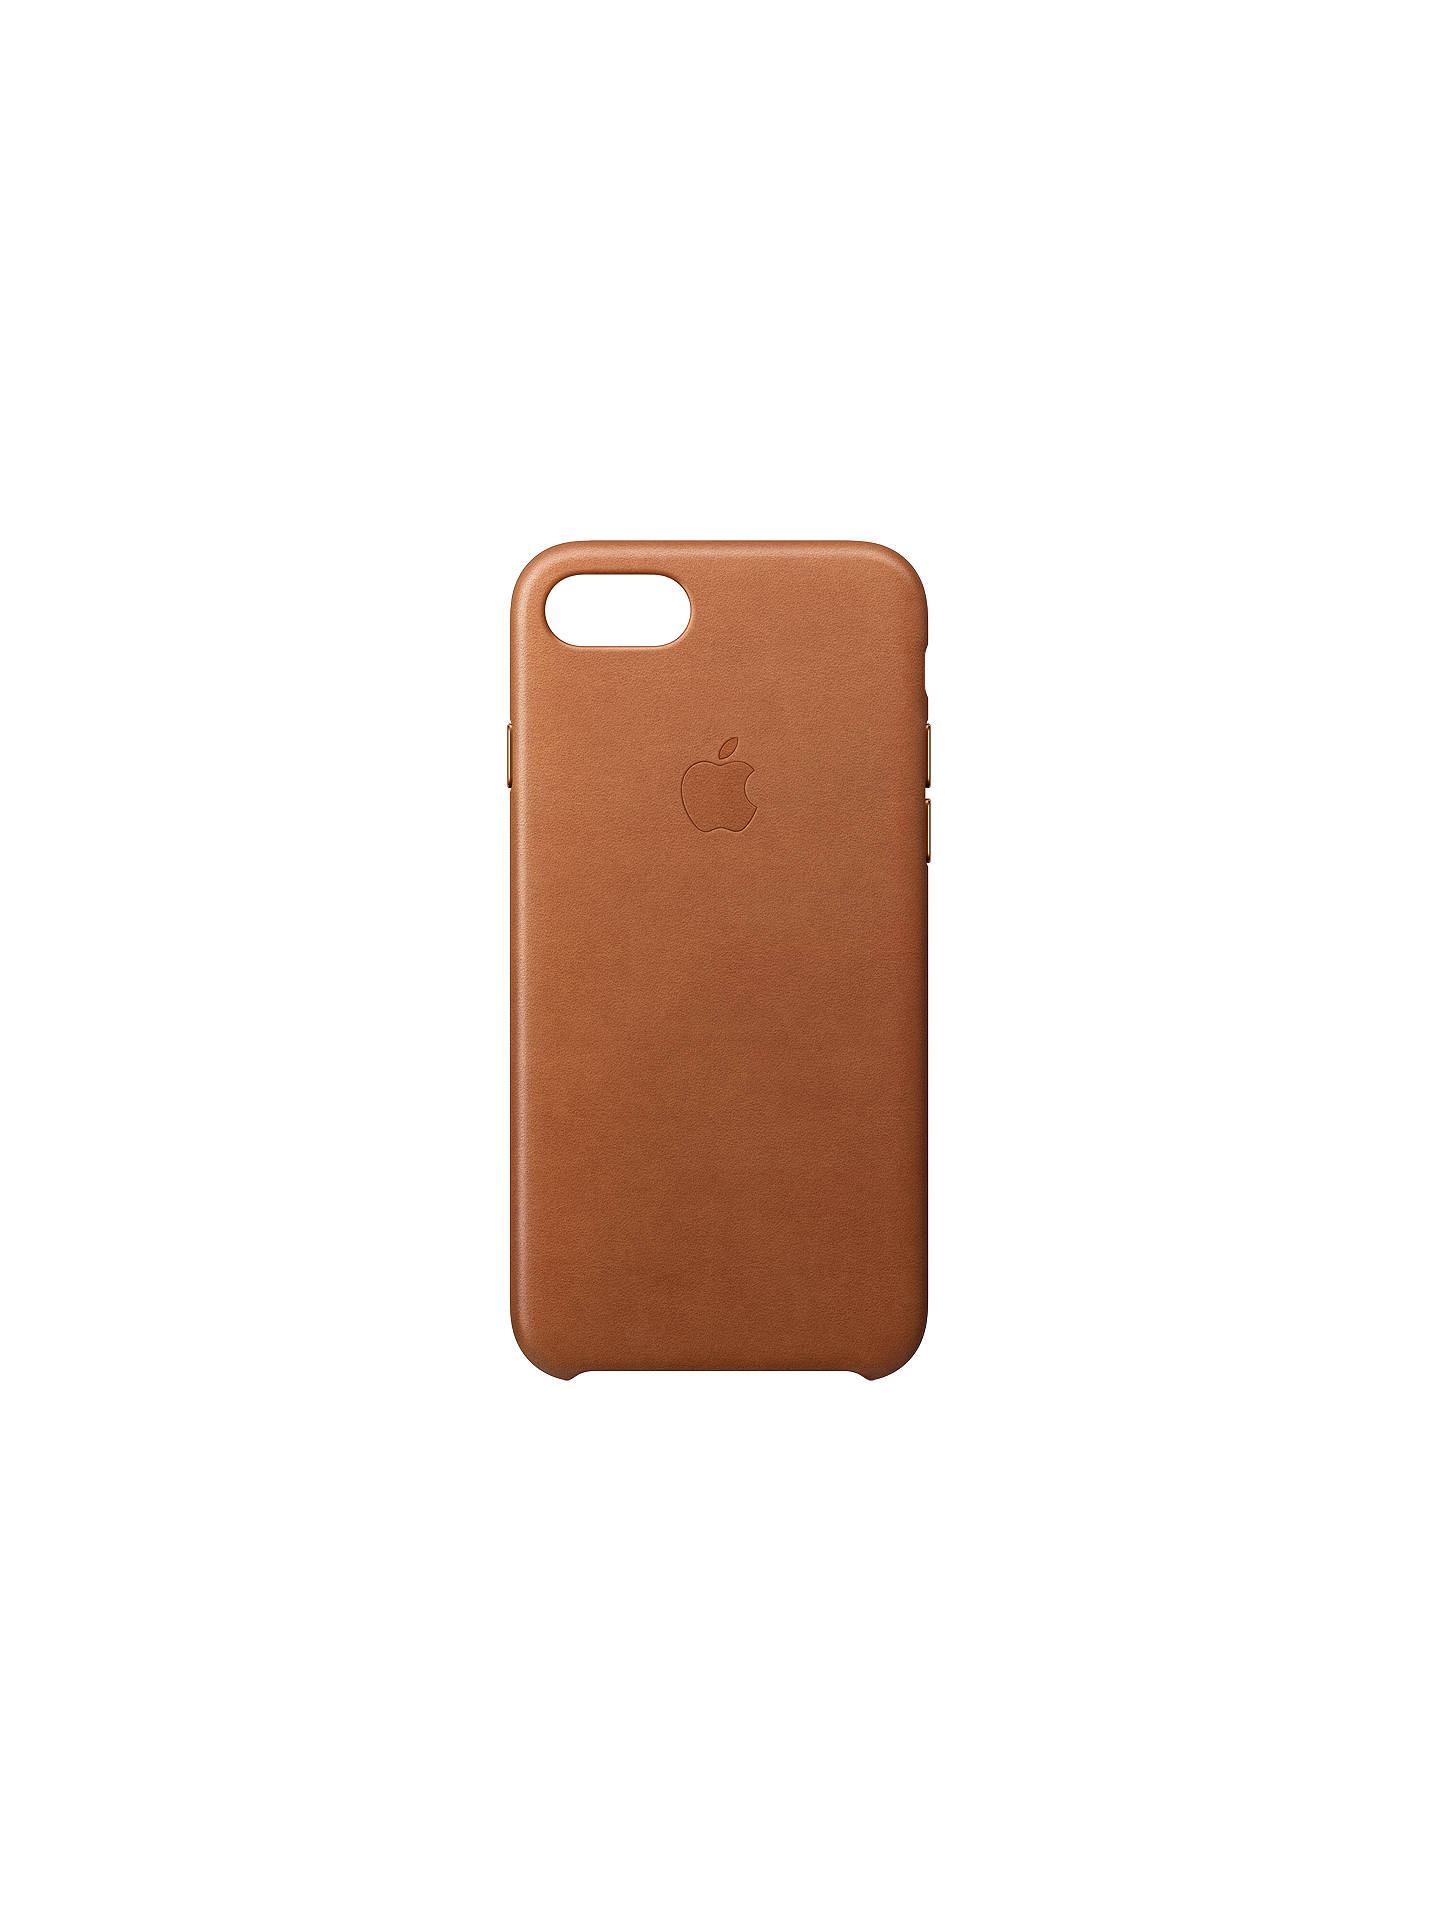 Buy Apple Leather Case for iPhone 7 / 8 / SE (2020), Saddle Brown Online at johnlewis.com